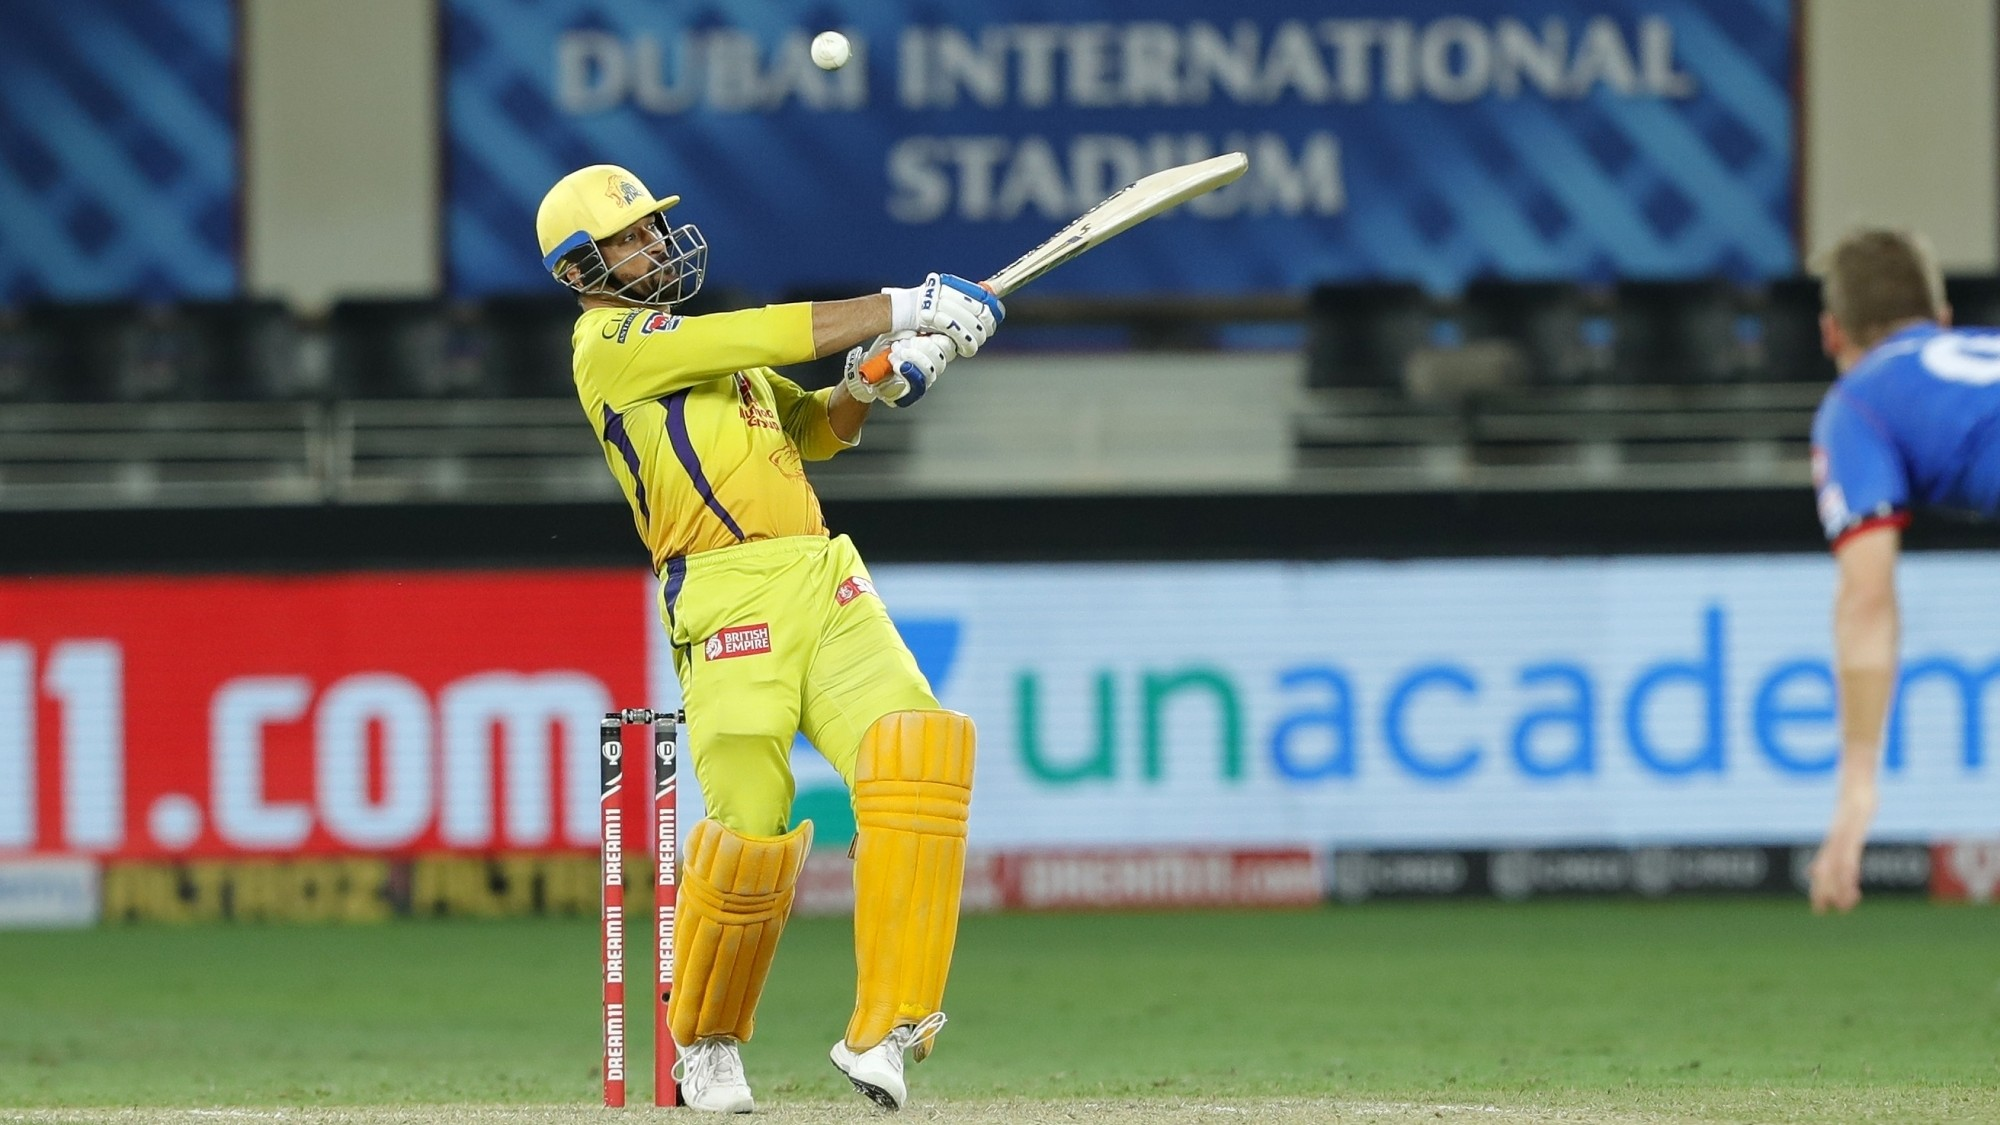 IPL 2020: CSK requests IPL governing council to reduce boundary size in Dubai and Abu Dhabi grounds